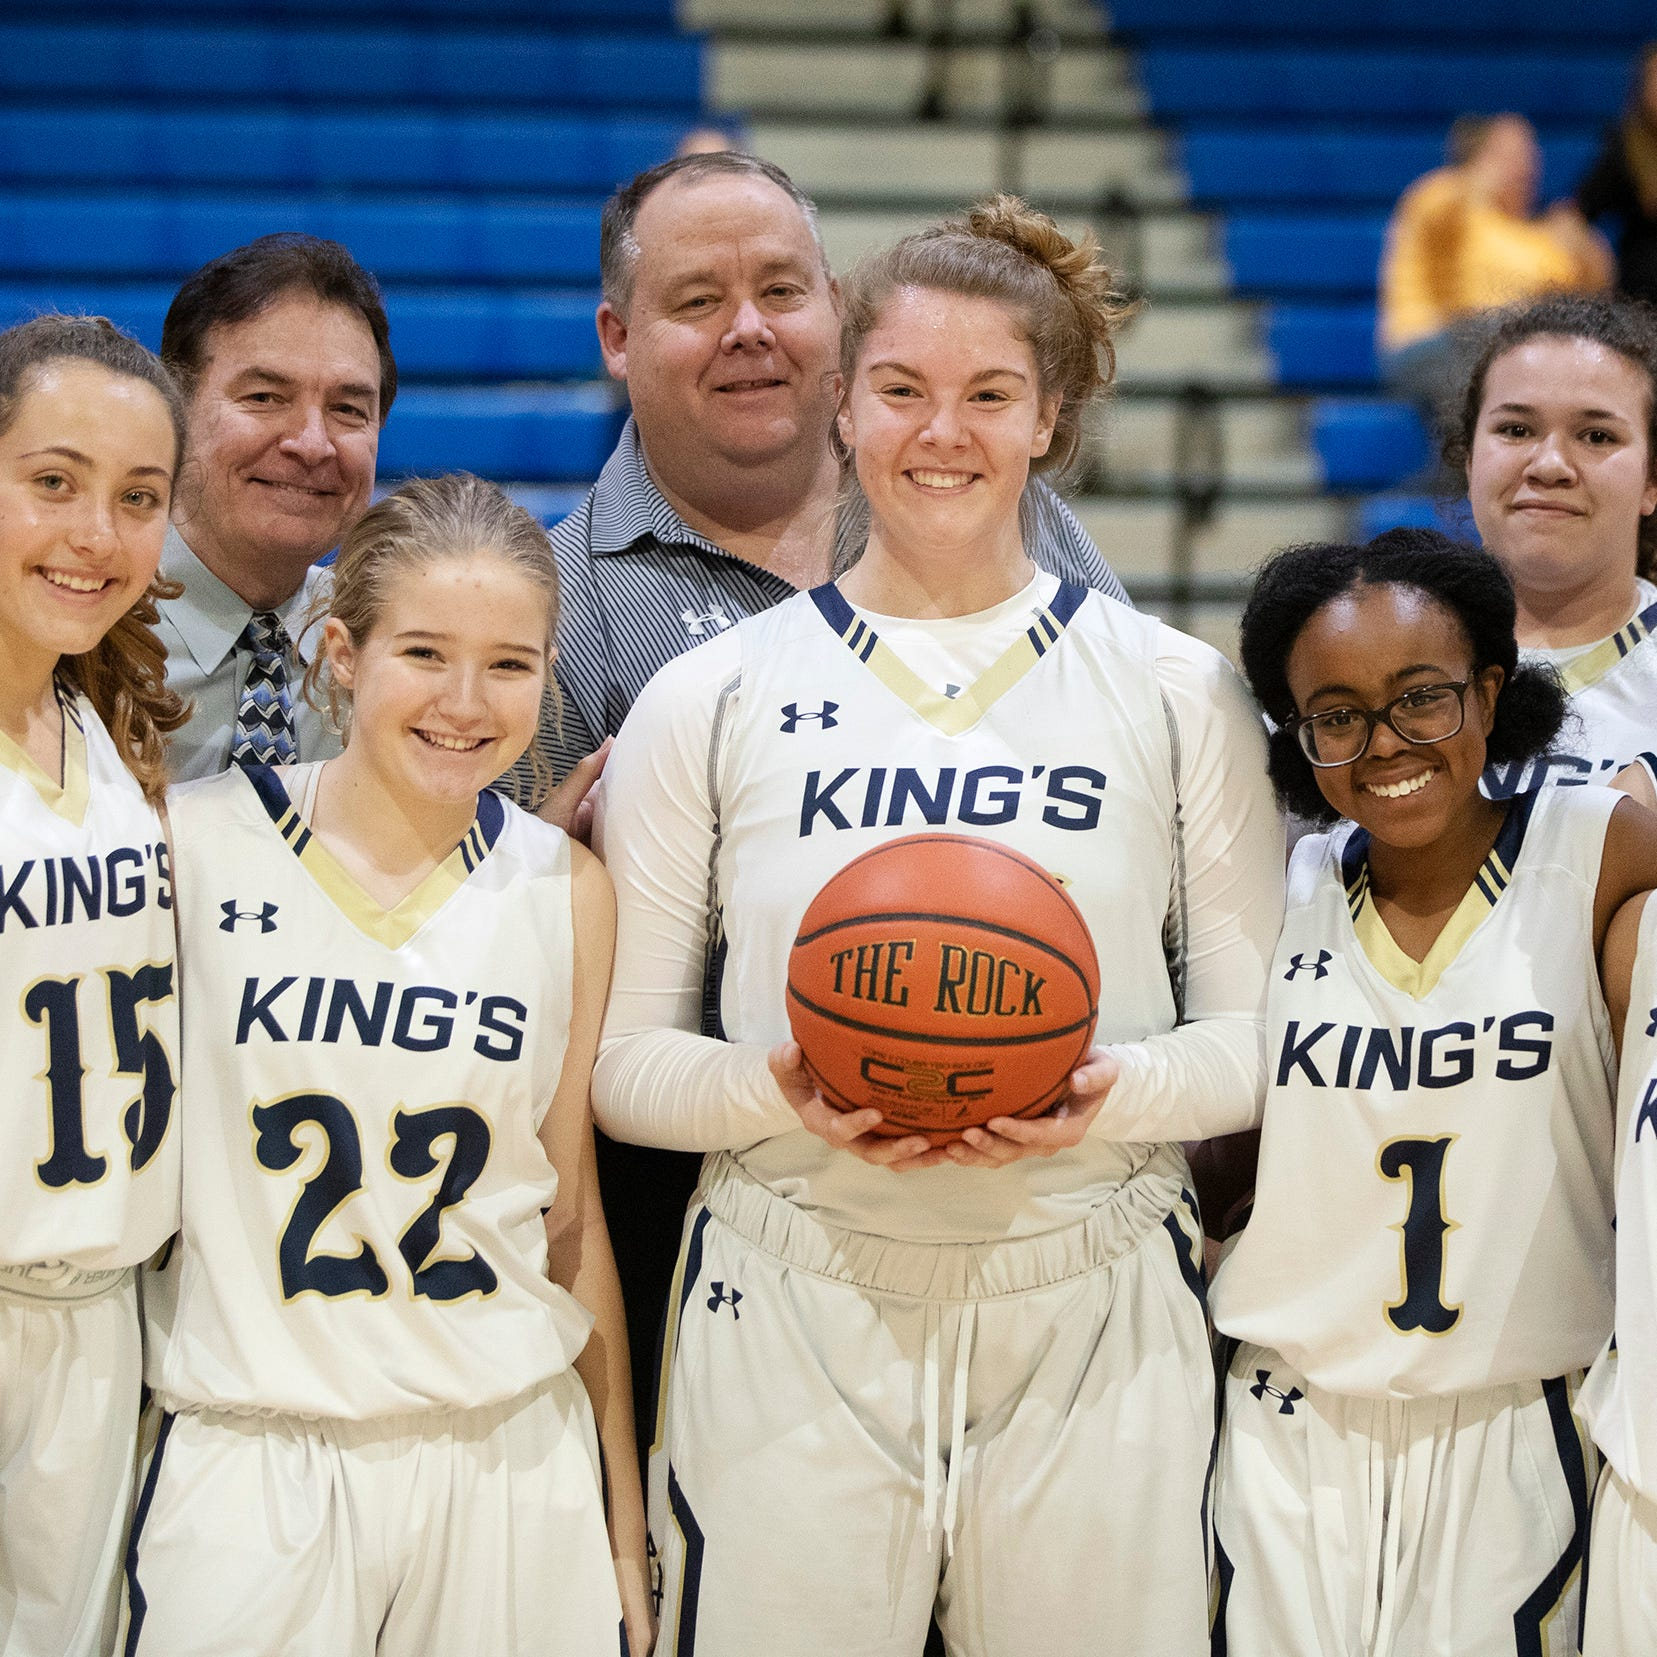 Lee County all-time leading girls basketball scorer Rebekah Bergquist of SFCA passes 2,500 points